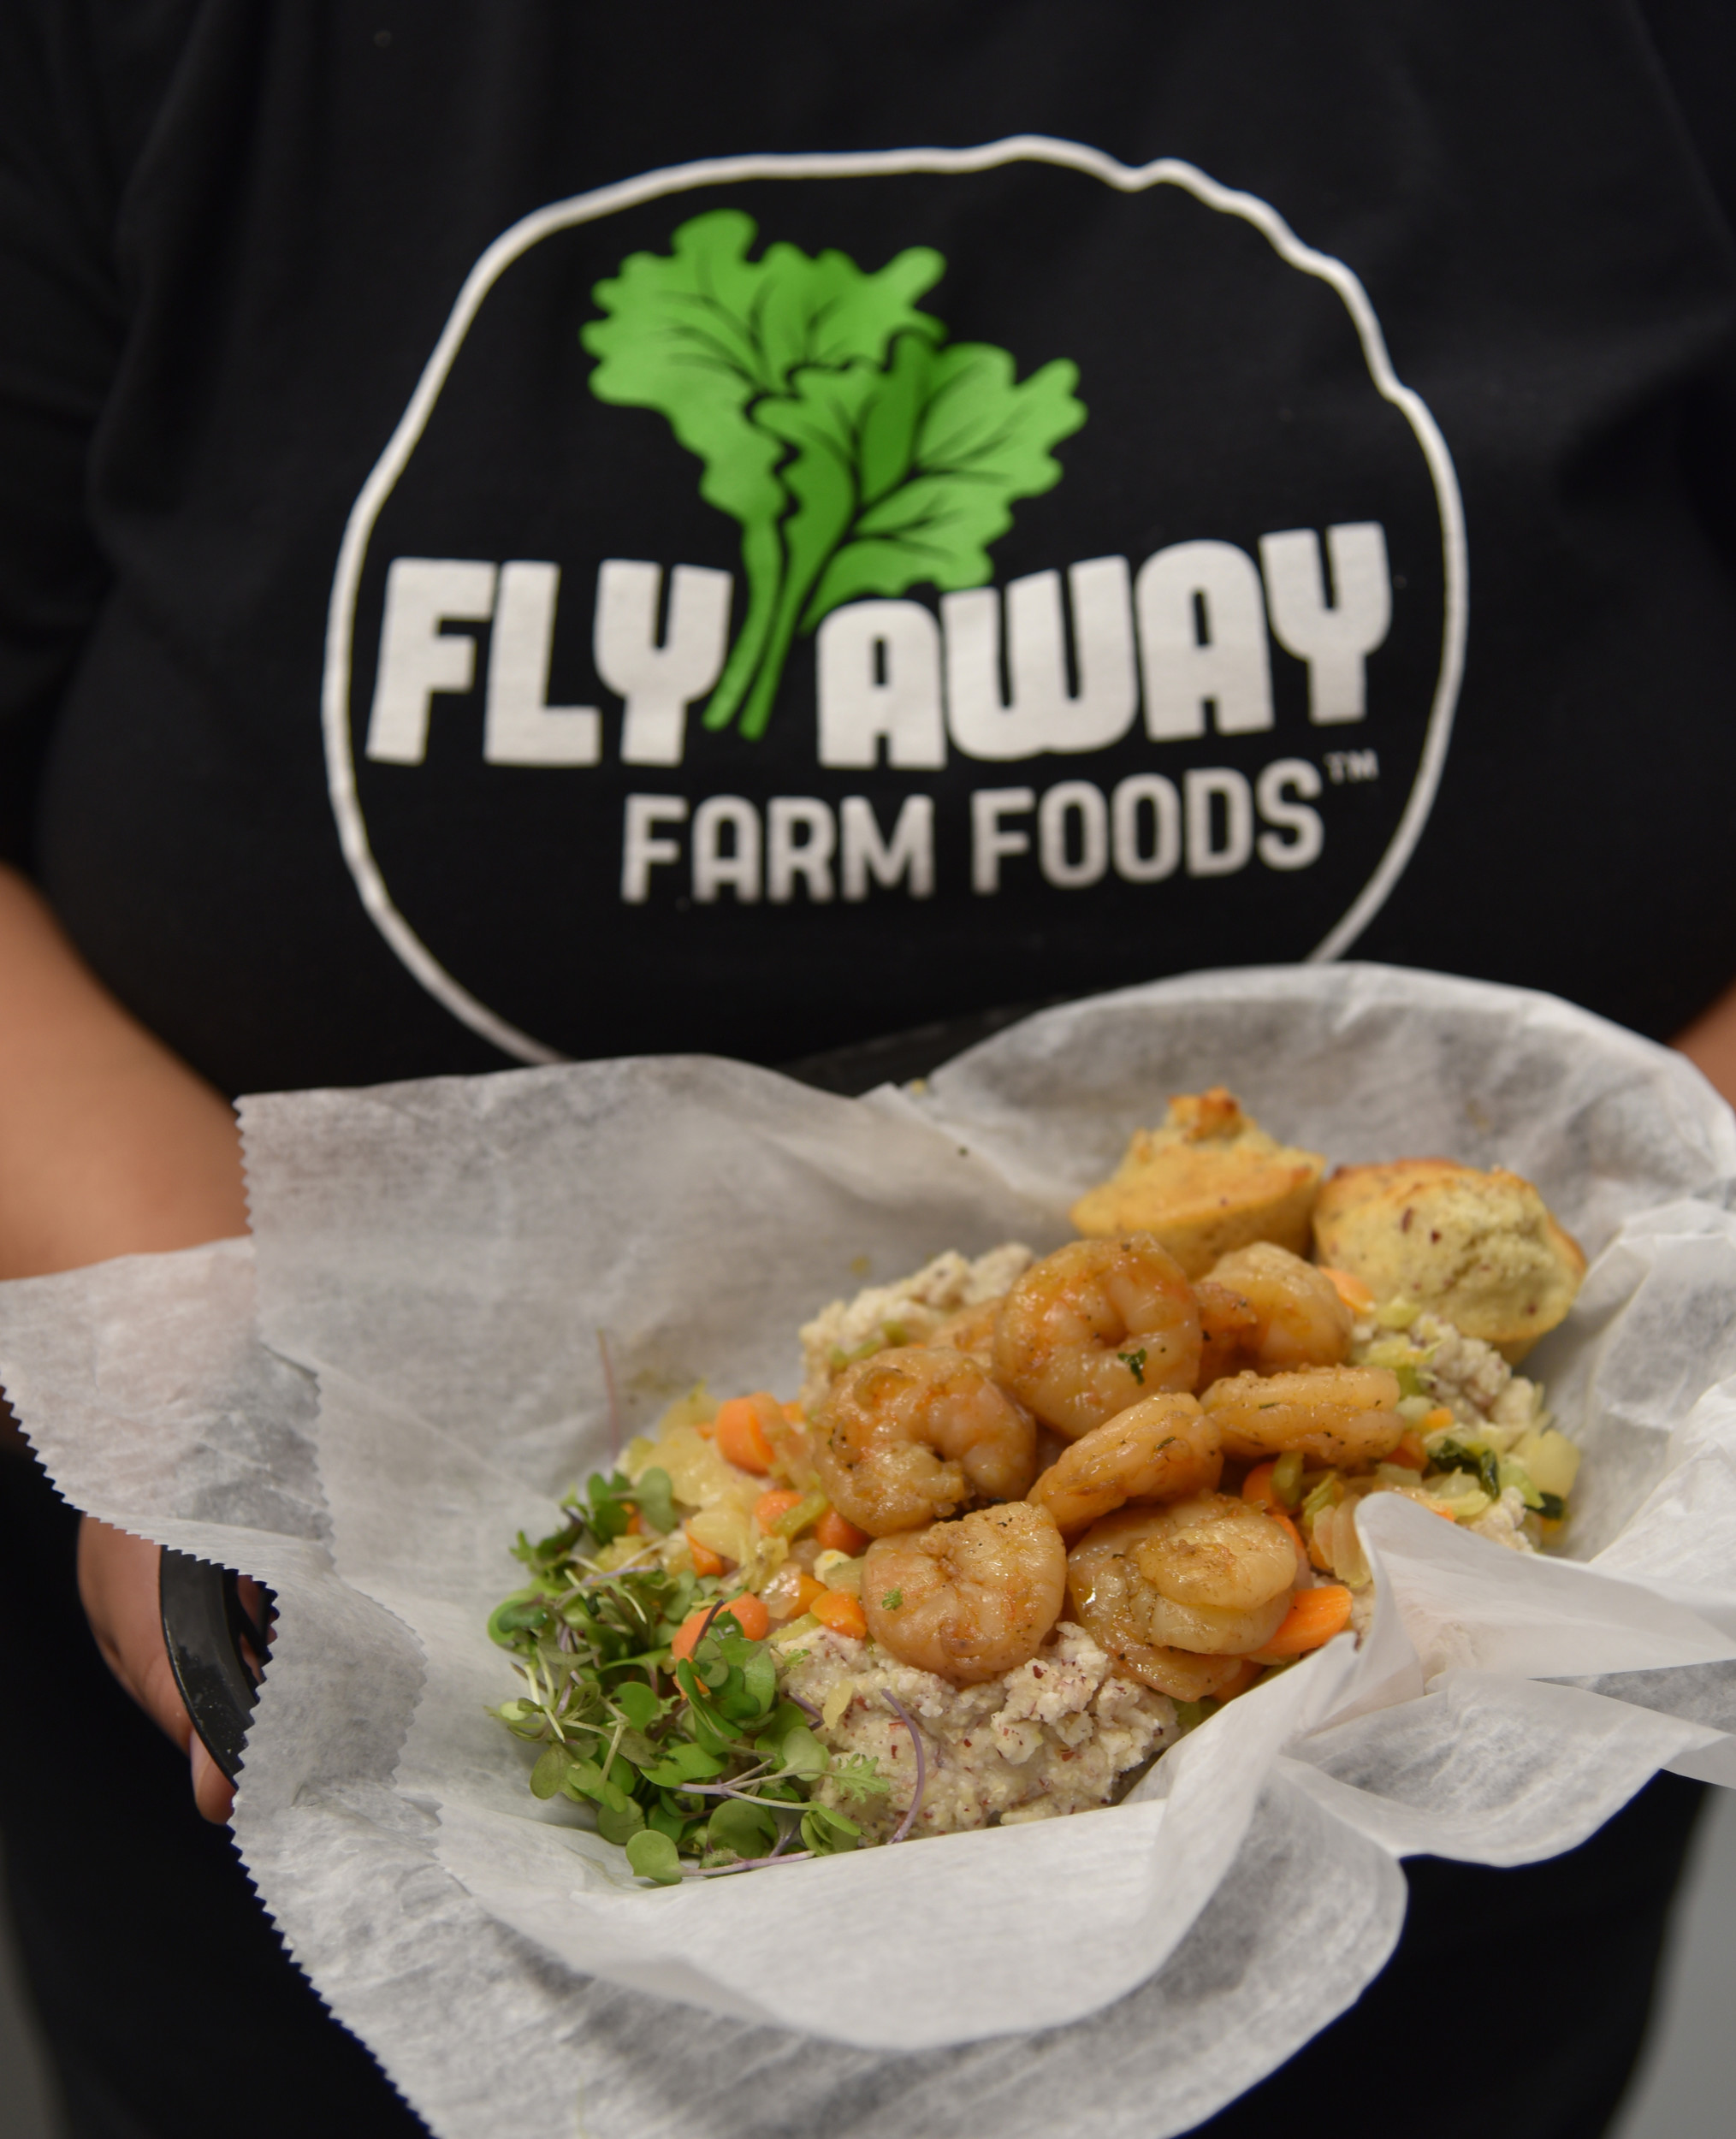 Shrimp and grits at Fly Away Farm Foods is made with shrimp from Bon Secour, Heirloom Grits from Bayou Cora Farms in Bon Secour and microgreens from Ship Shape Urban Farm in Mobile.